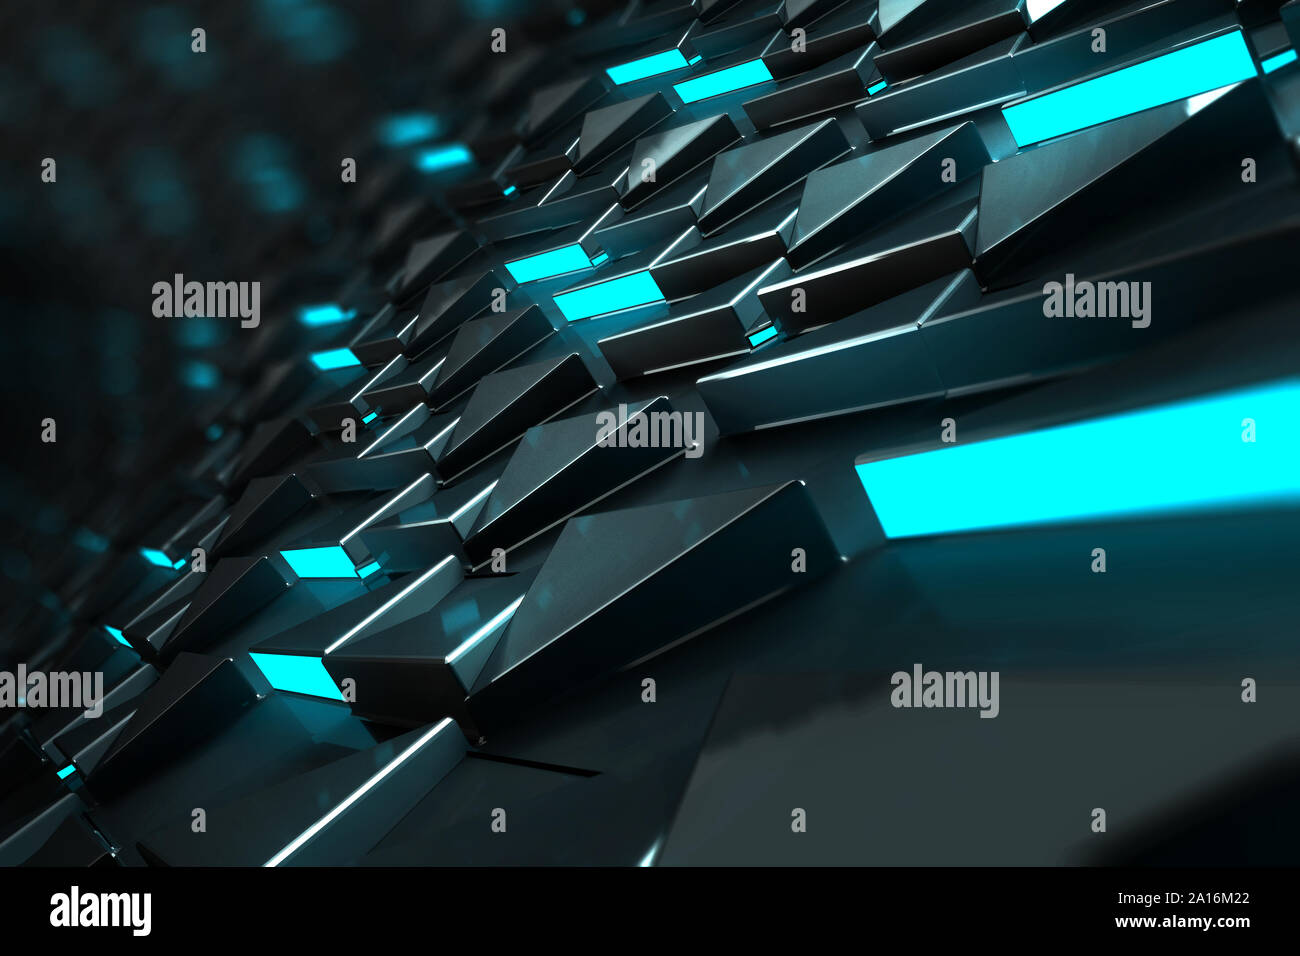 3d Illustration Rendering Abstract Concept Tech Wallpaper